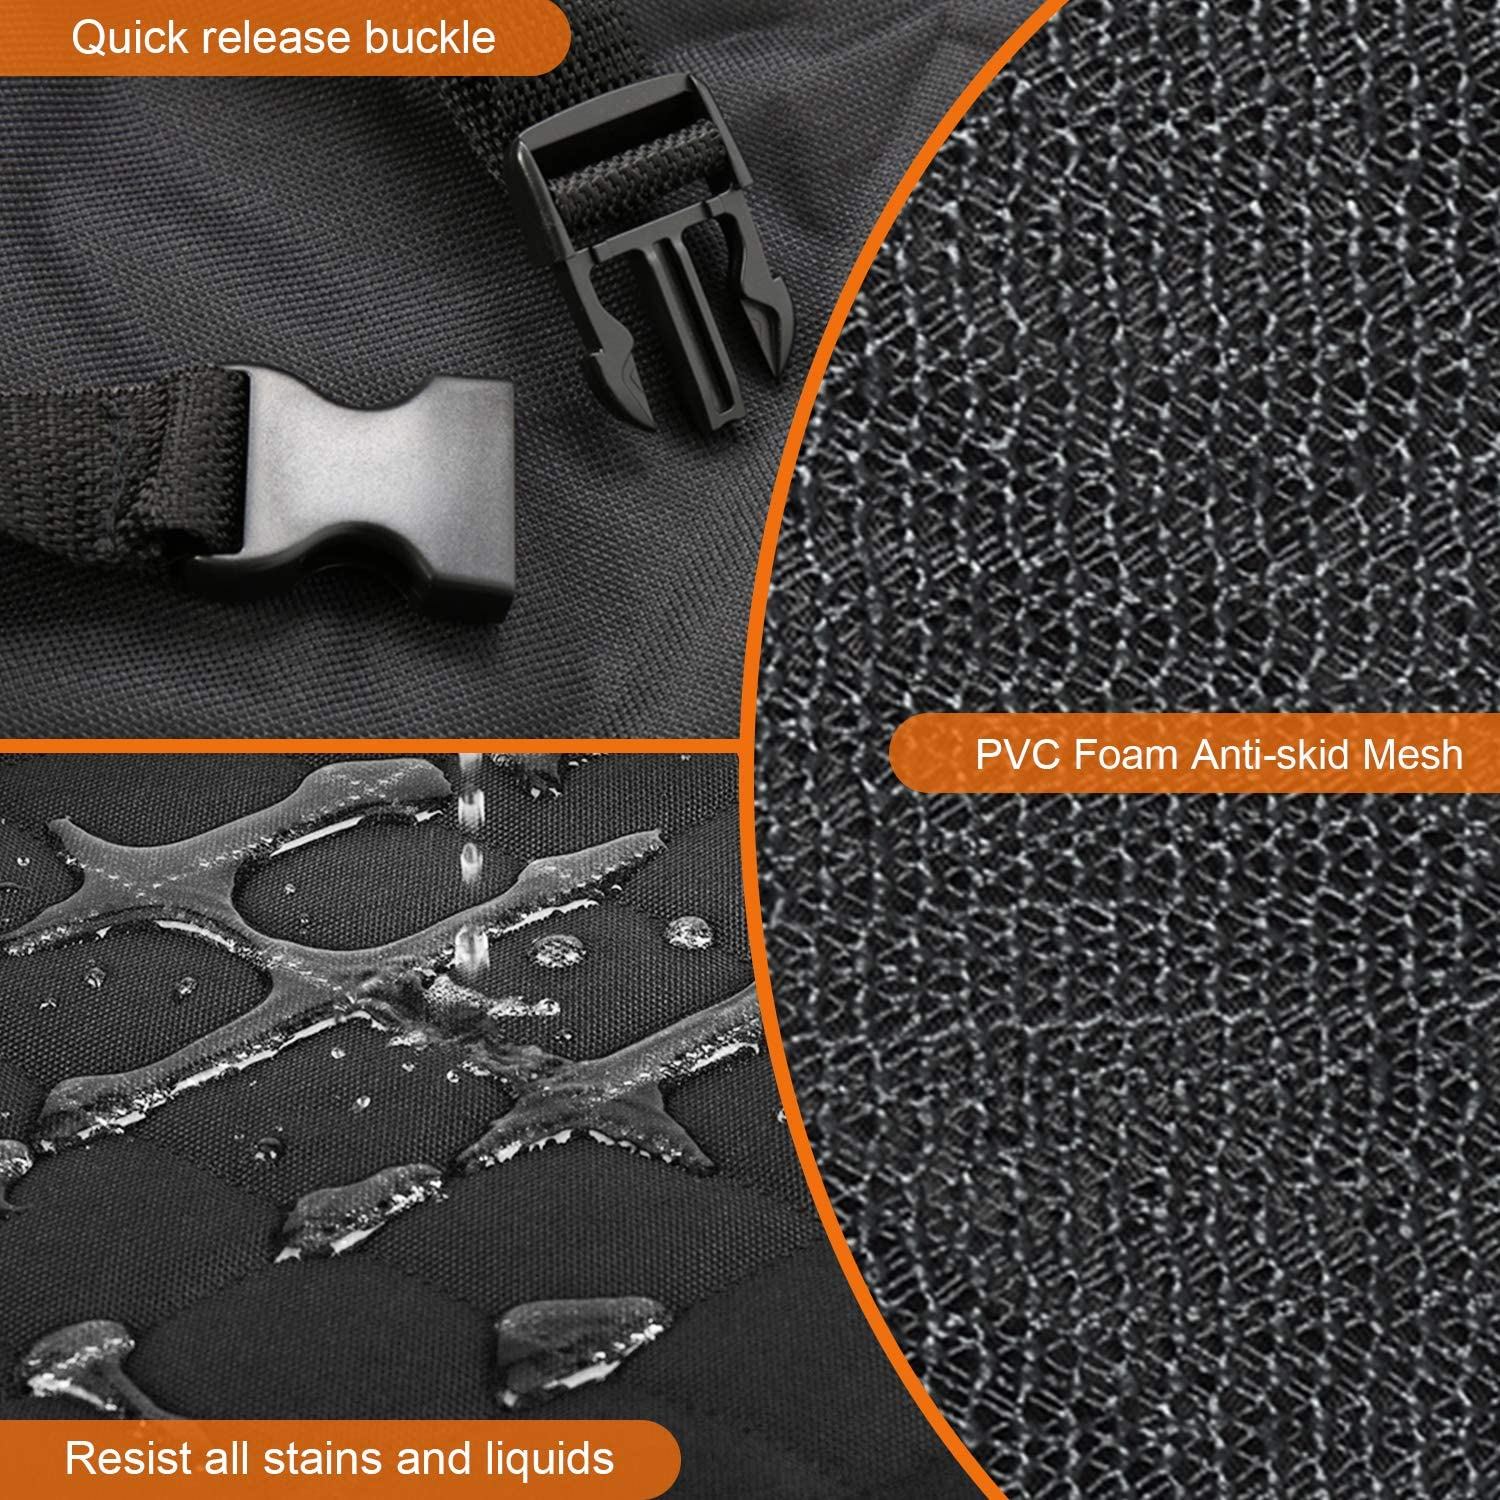 Seat Cover Protector for Cars Trucks SUVs Docatgo Luxury Car Seat Cover//Hammock for Rear Bench 100/% Waterproof Anti-Slip Design Simple Installation /& Easy to Clean